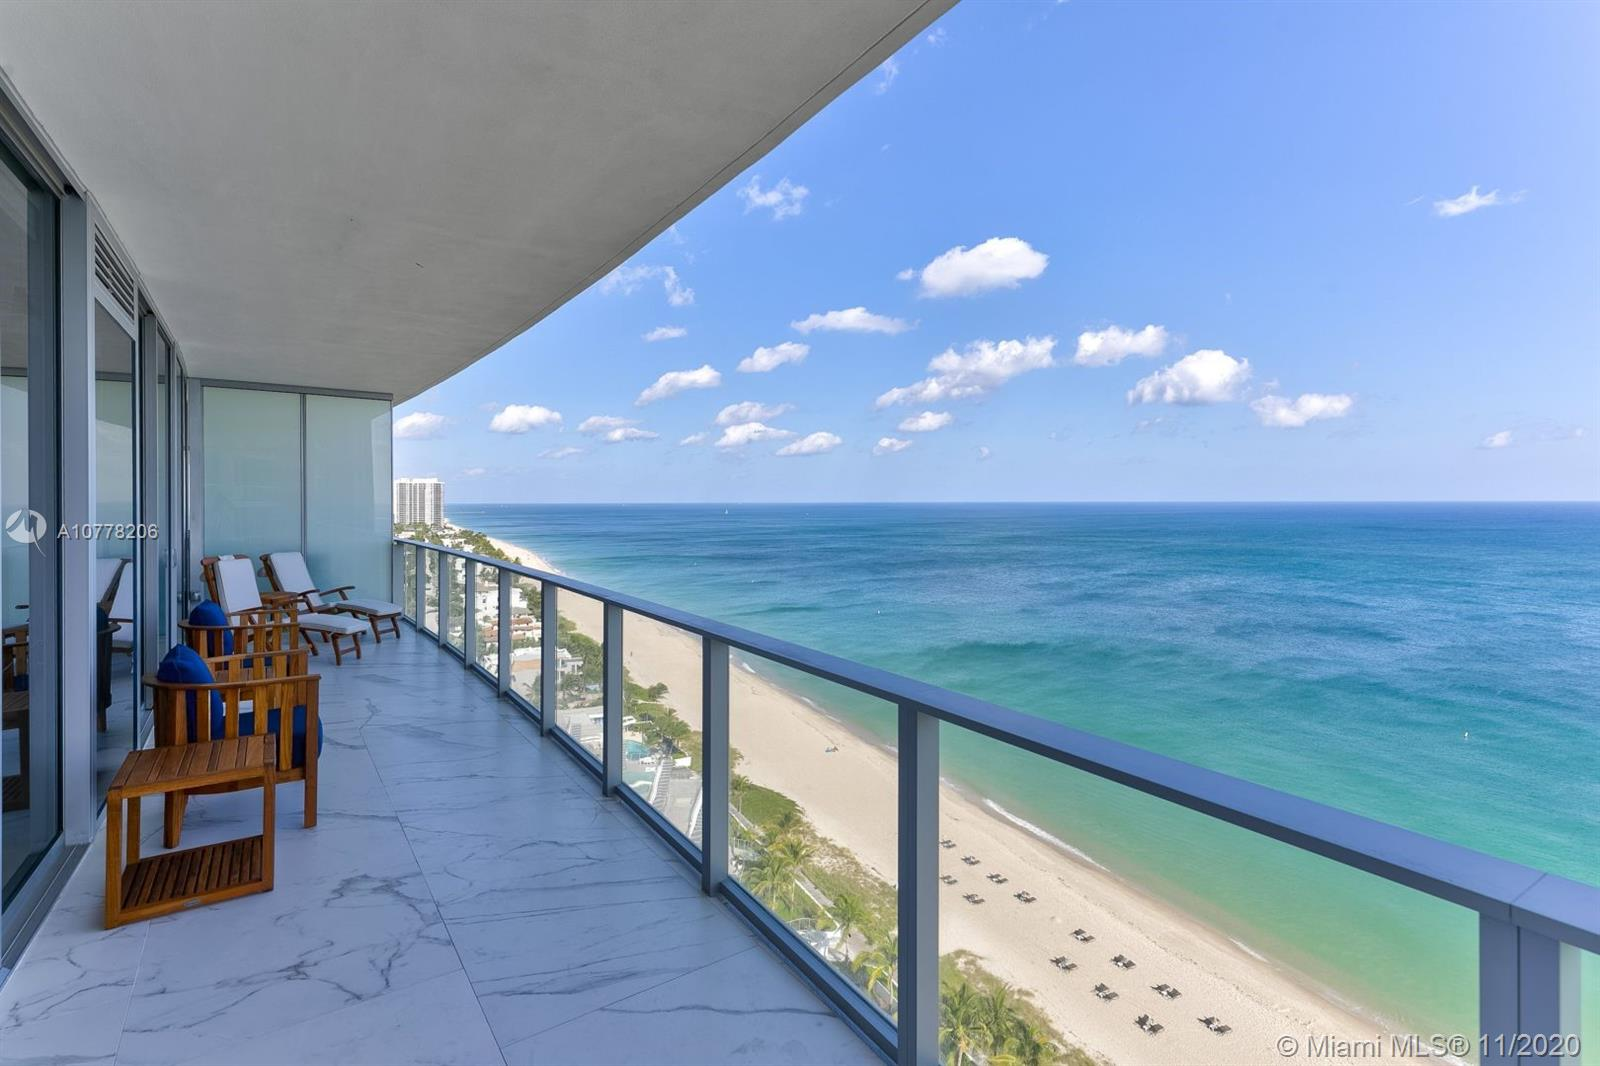 Located at the acclaimed Auberge Beach Residences & Spa on the beachfront in Fort Lauderdale, this 5 bedroom (including service quarters) condominium home is the essence of true luxury and sophistication. The community boasts 450 linear feet of beachfront and offers residents an exclusive array of cultural and culinary experiences. Auberge S1801 is a southeast corner thru unit with both beachfront and Intracoastal views. Outfitted with Italian Carrera marble, with Wolf and Subzero appliances, this residence is ideal for the discerning buyer looking for an unparalleled level of service and a most memorable experience.